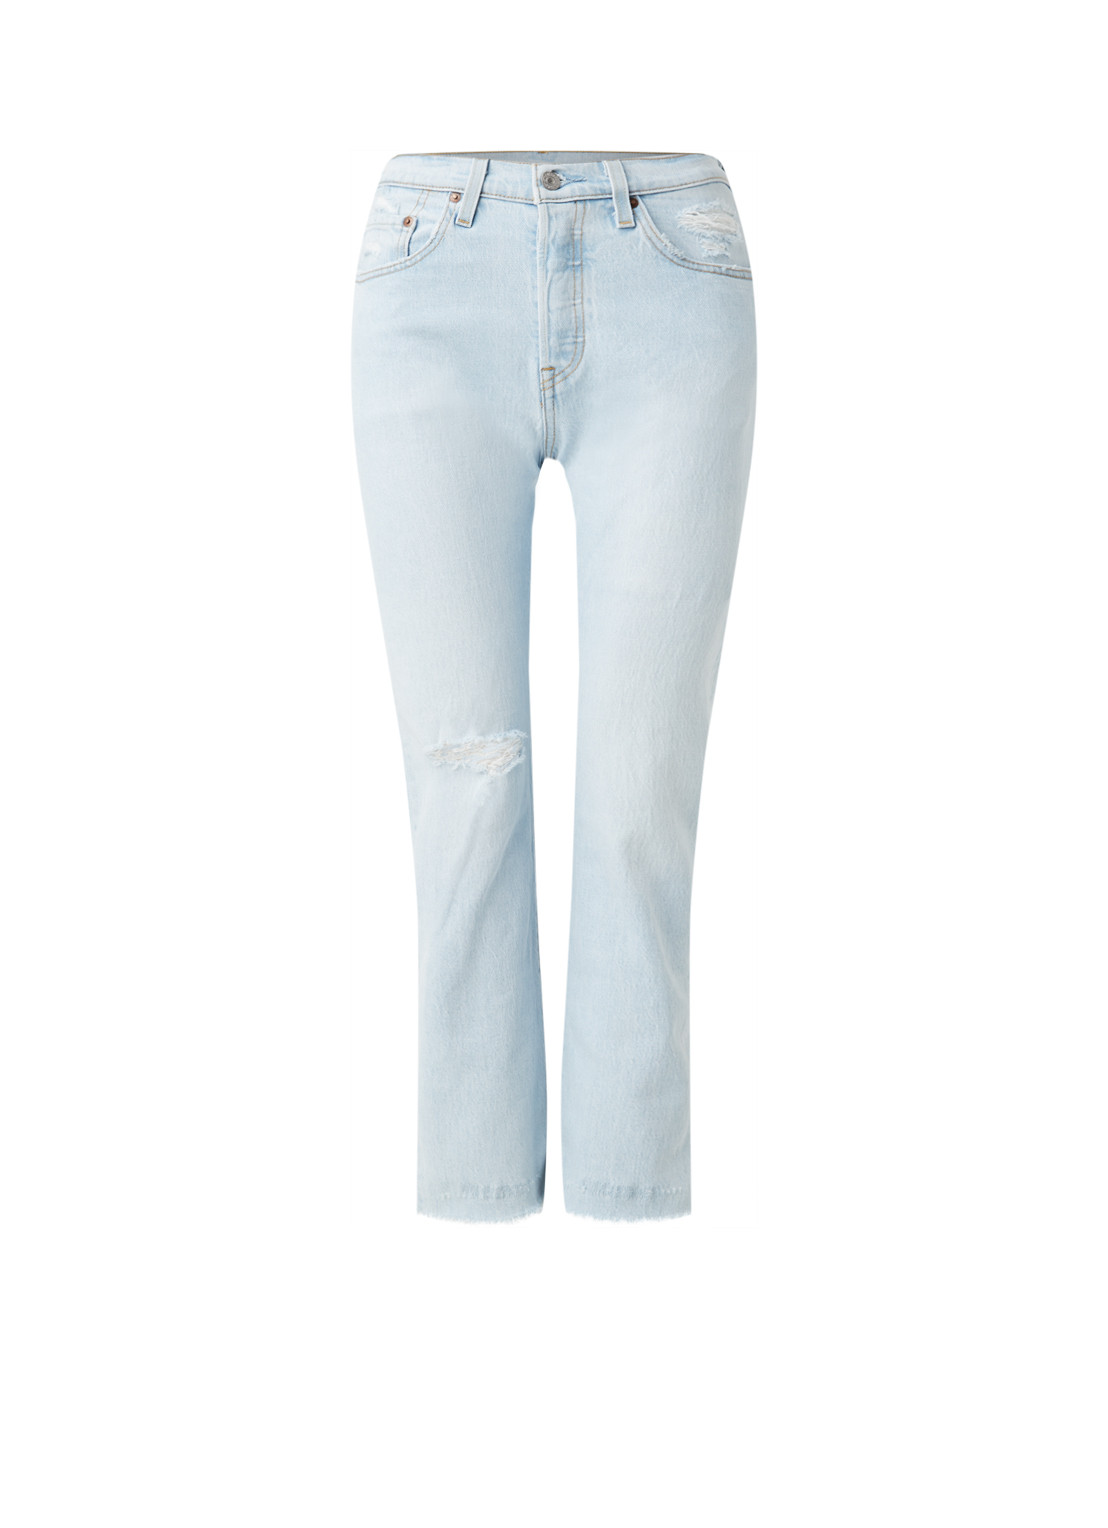 501 Shout Out high waist slim fit cropped jeans